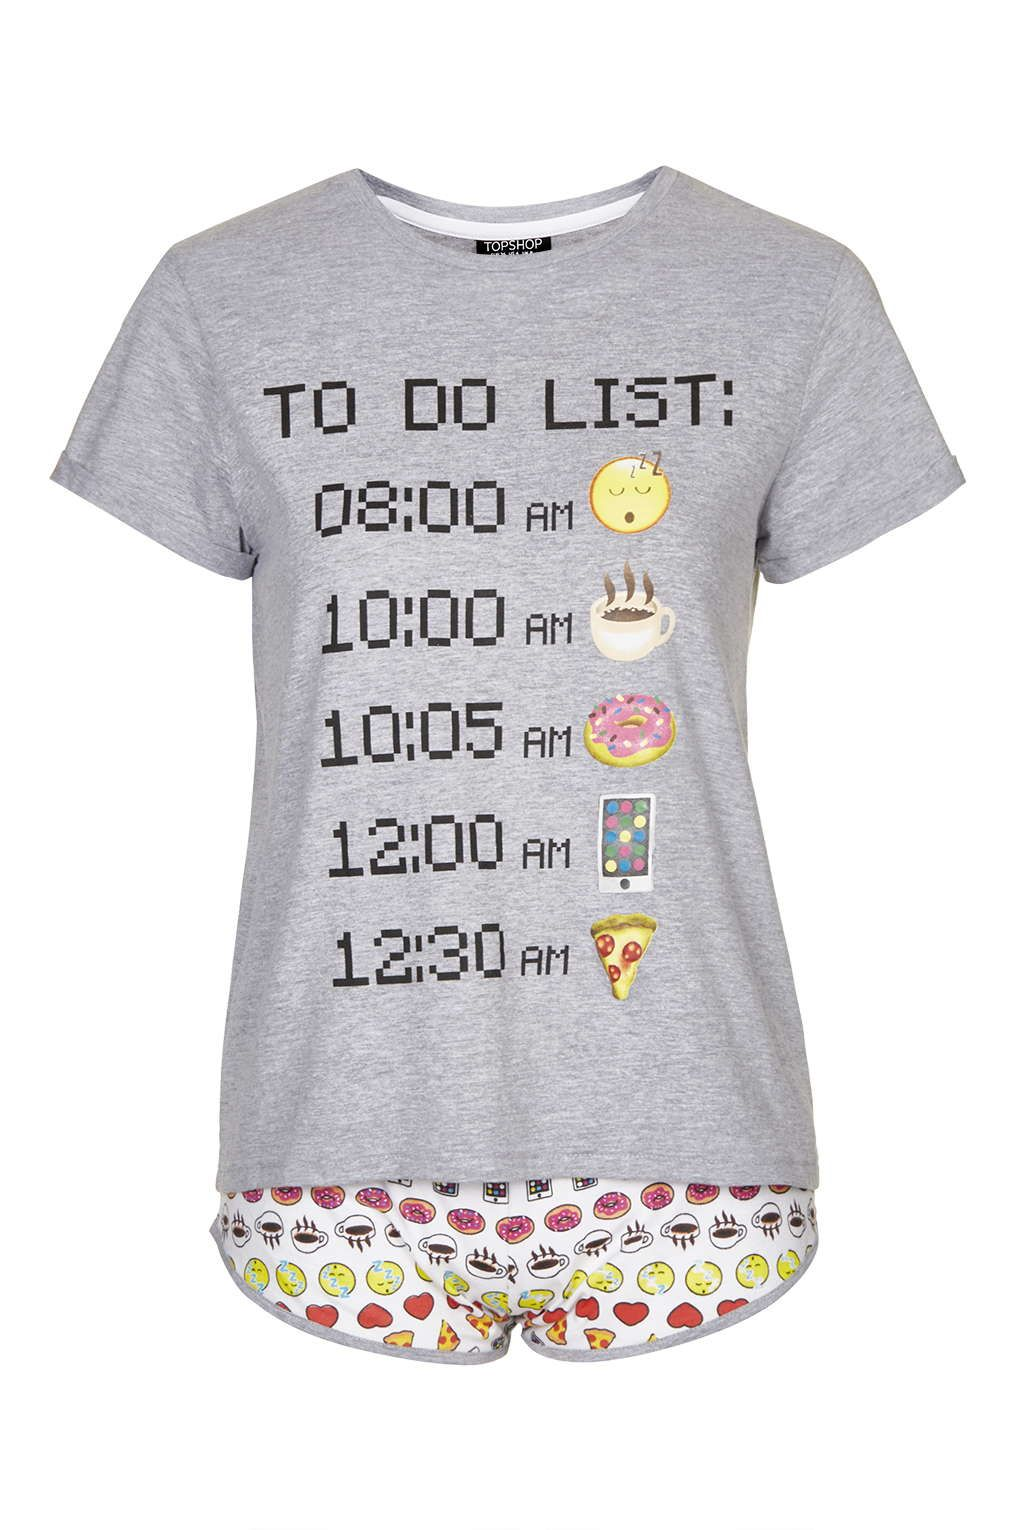 Emoji Pyjama Set - Nightwear - Clothing - Topshop Like and Repin. Noelito  Flow instagram 1b7b9c100